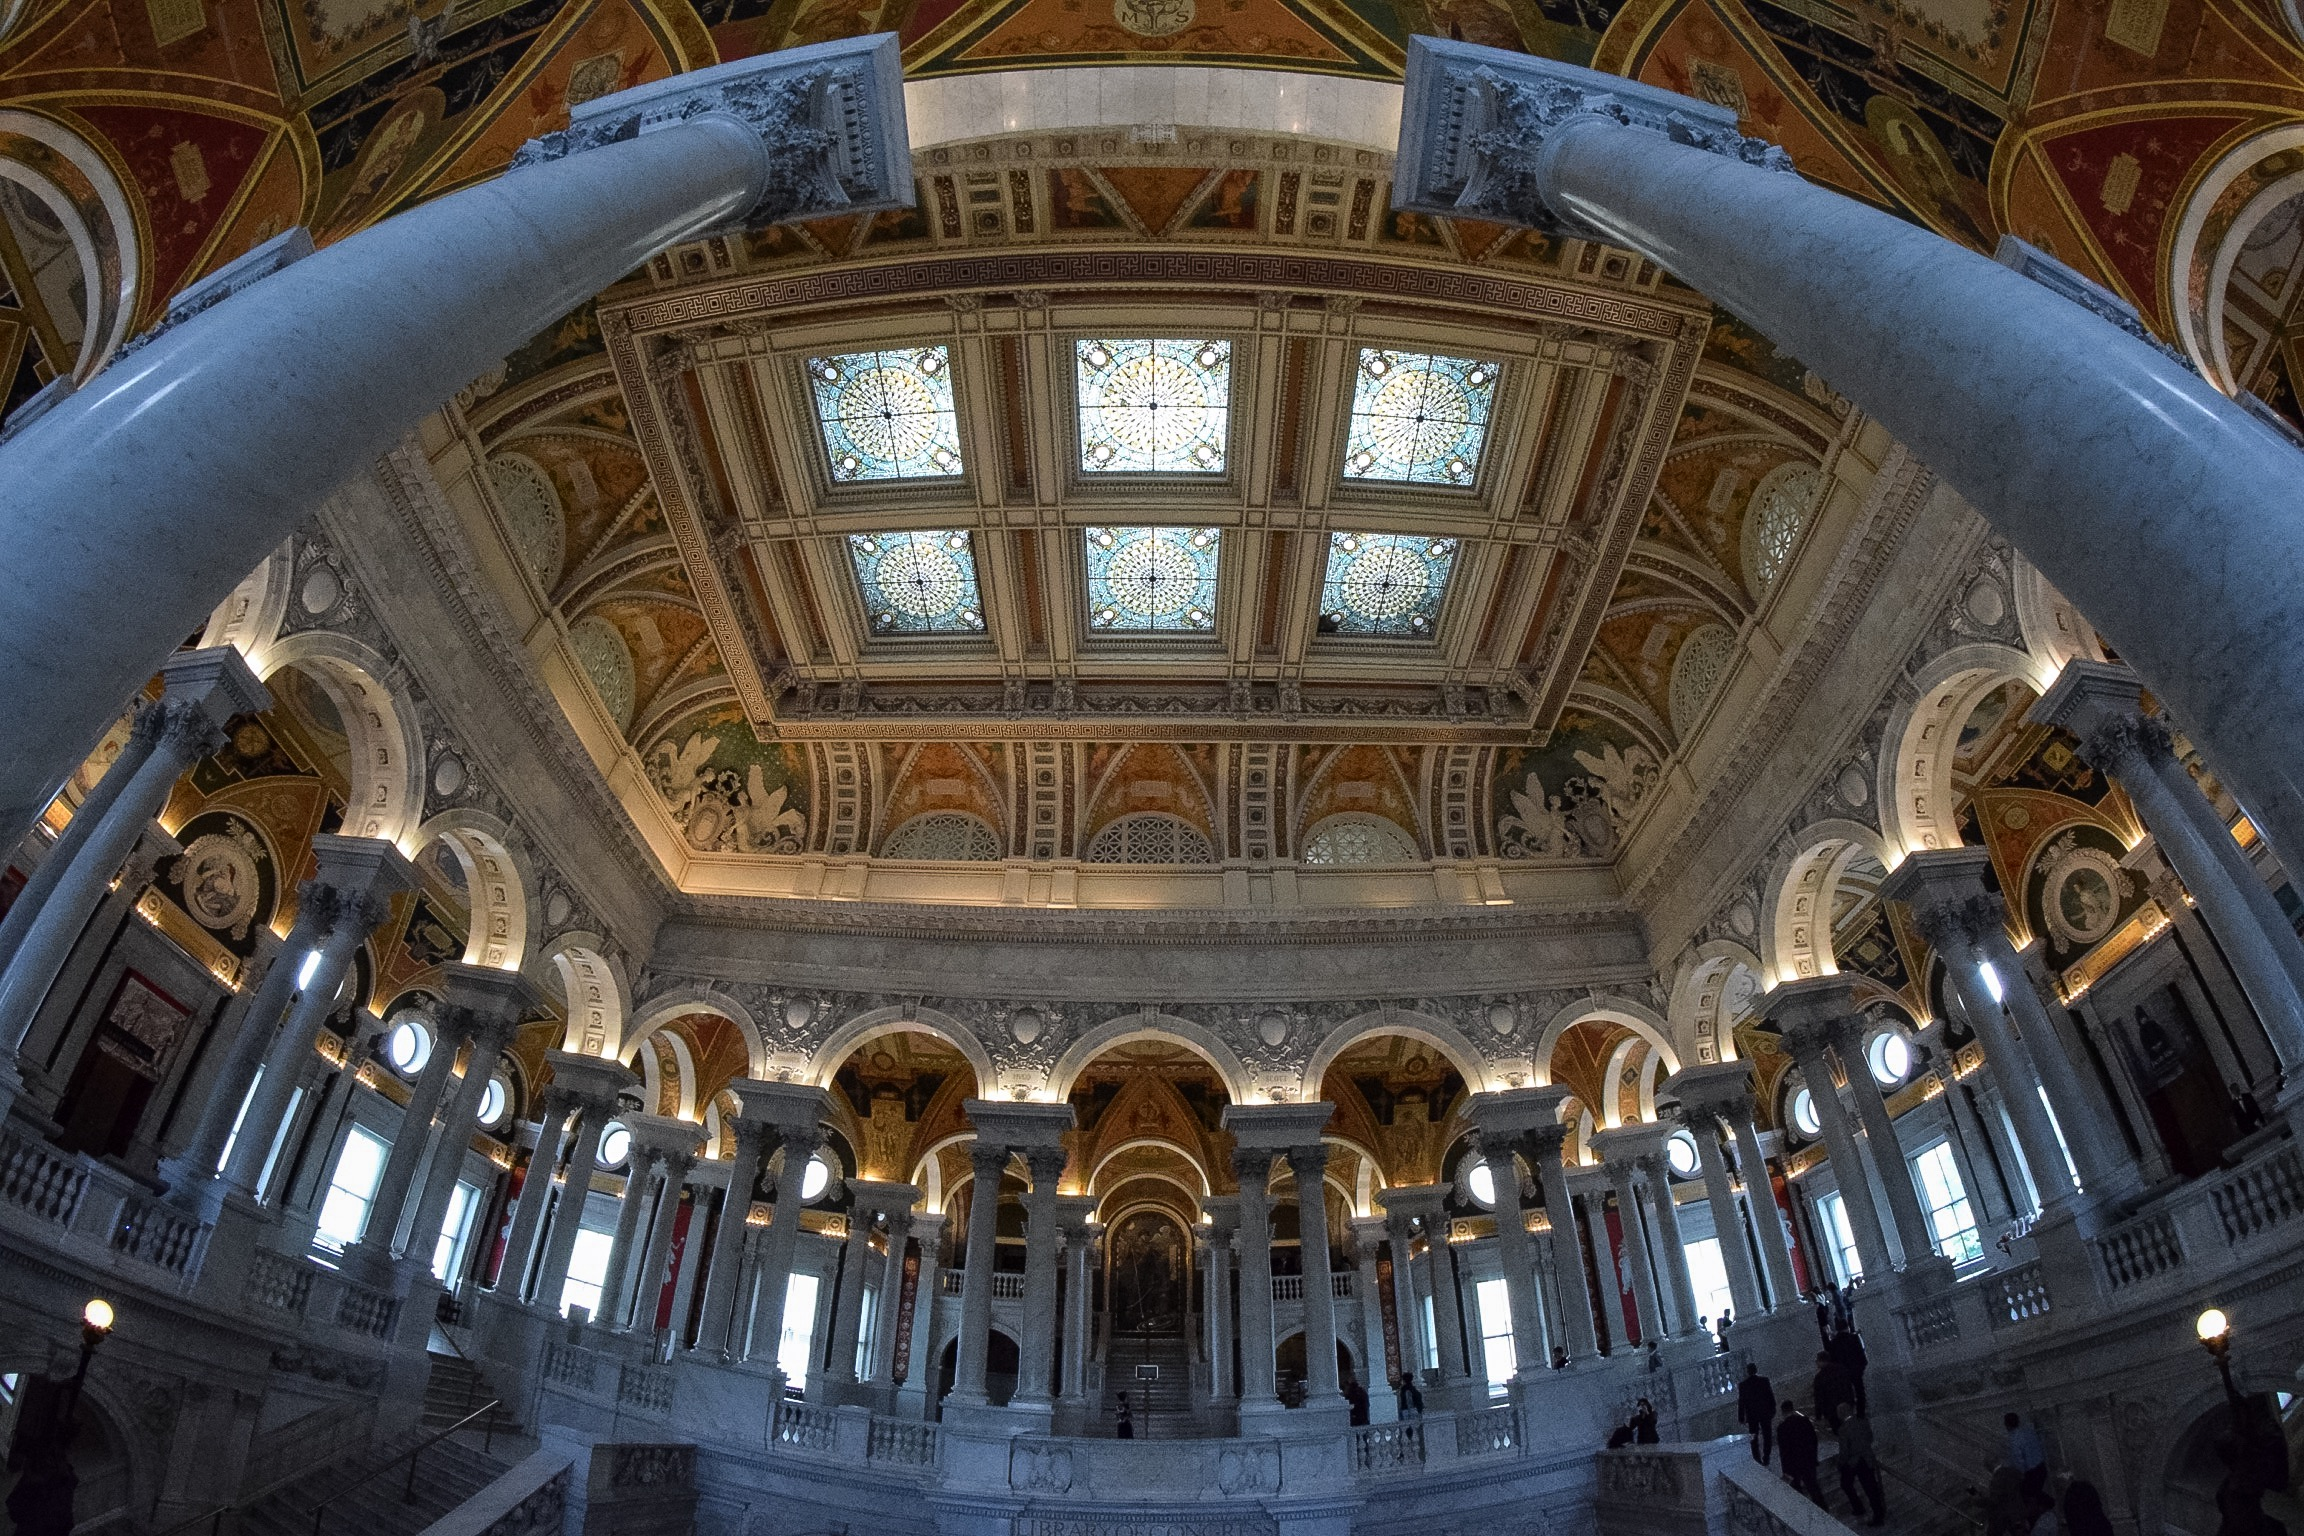 The Library of Congress is free to tour and features some of the most stunning architecture in the district.